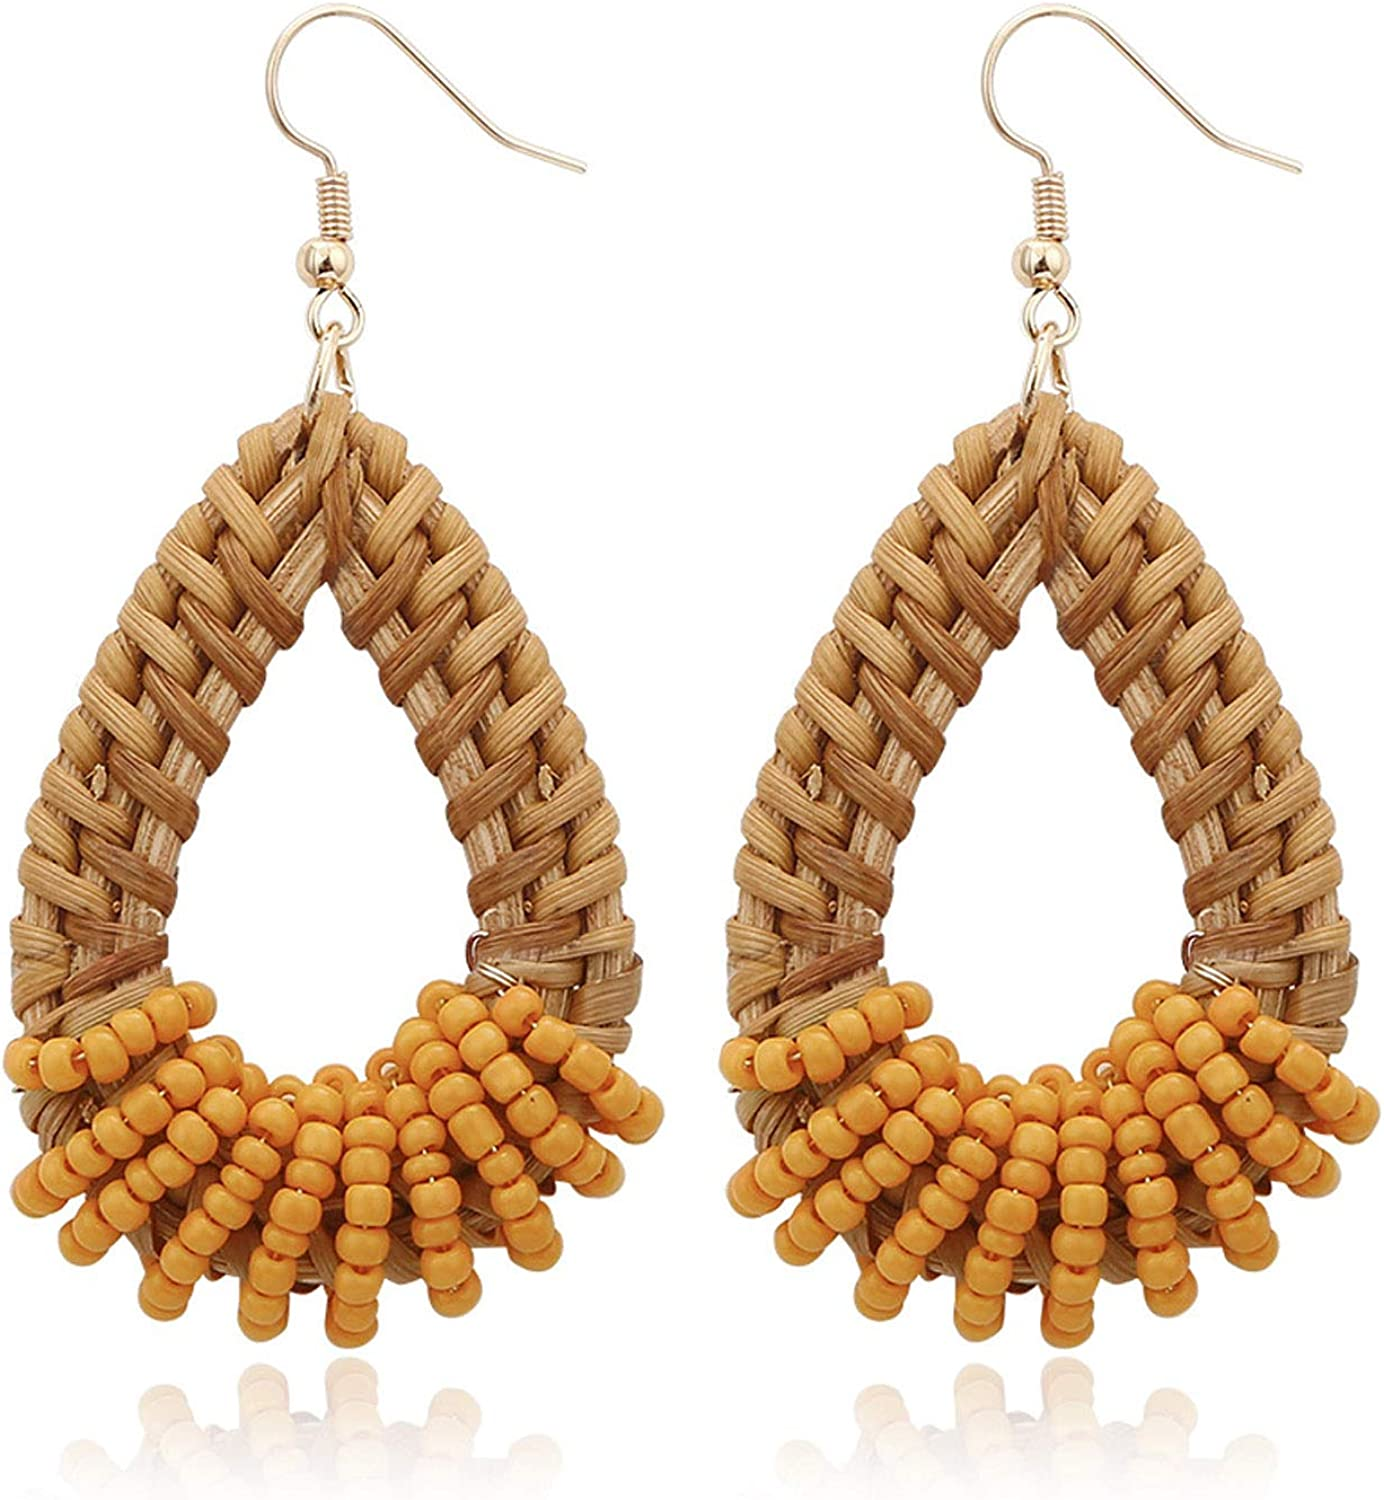 Dangle Earrings Clip on Earrings for Women Girls Rattan Bohemian Boho Handmade Seed Beaded Dangling Piecered or No Piecered Gold Tone Lightweight